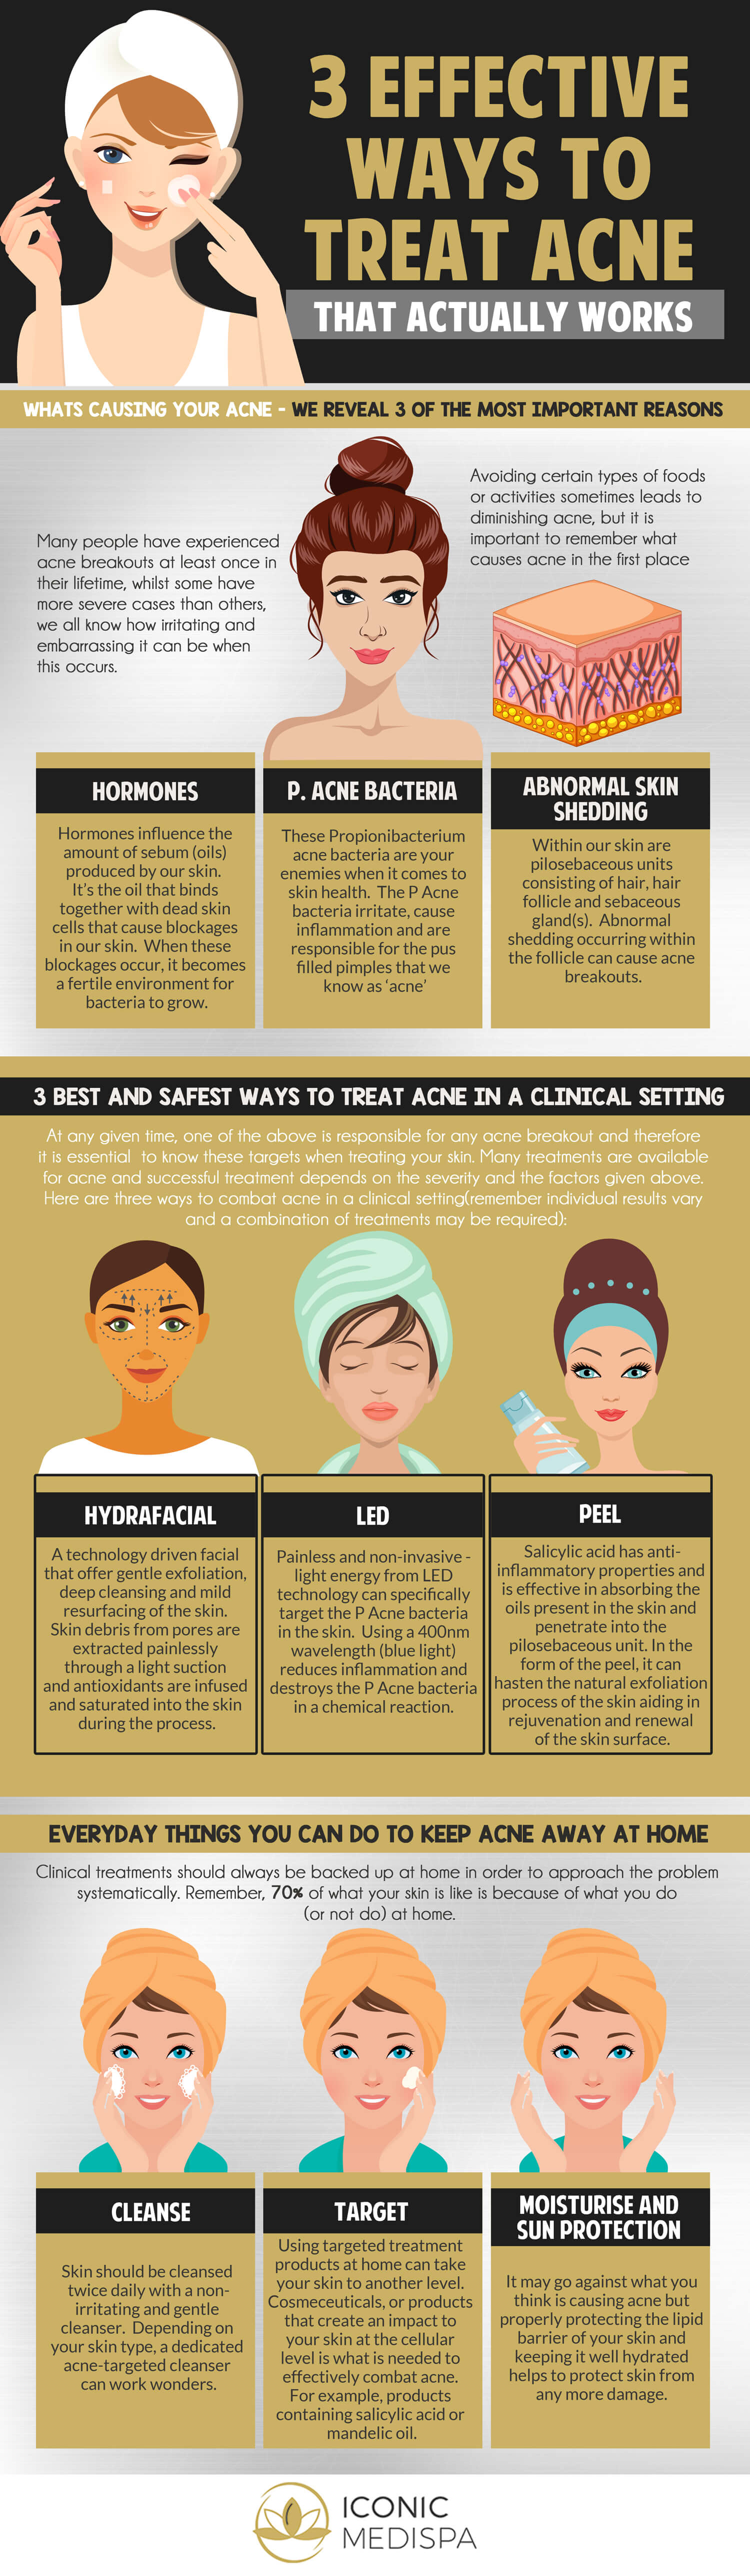 3-Effective-Ways-to-Treat-Acne-Infographic-plaza